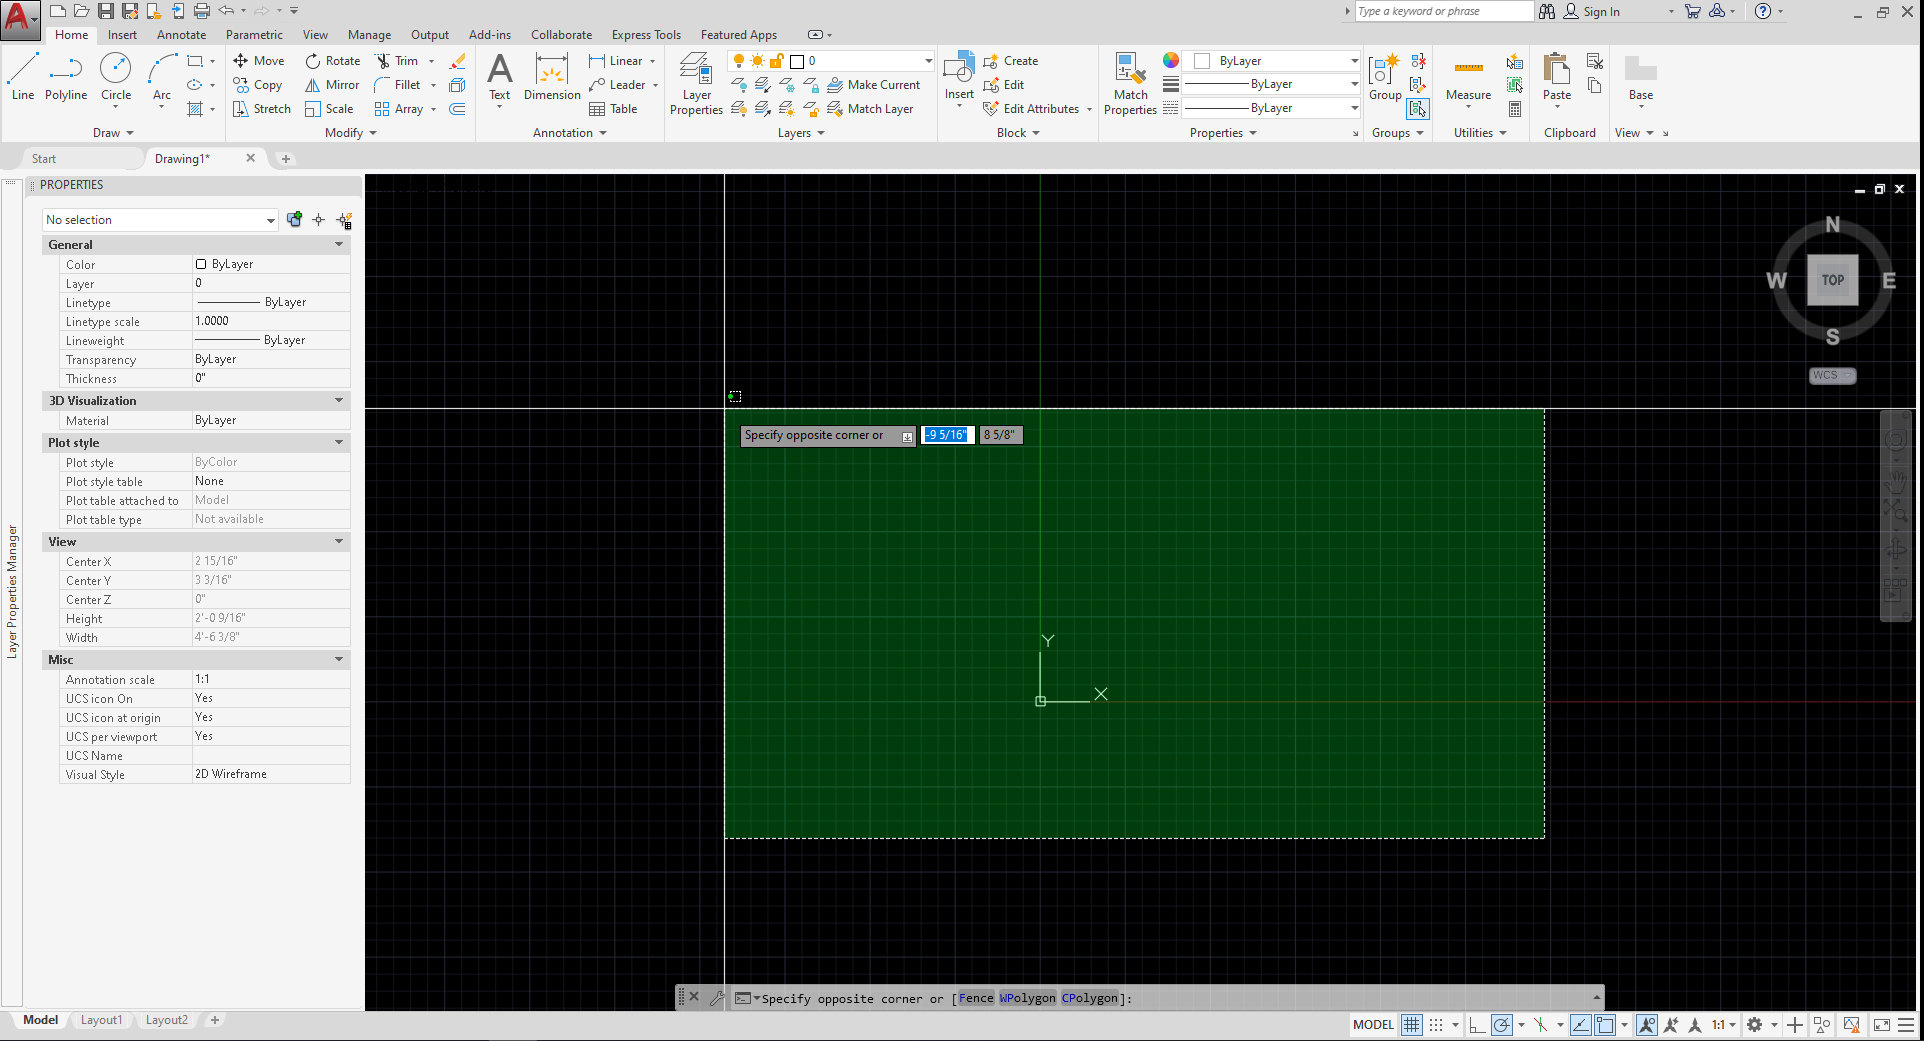 It shows the result of cross selection on AutoCAD software. The cross selection shows in green color.